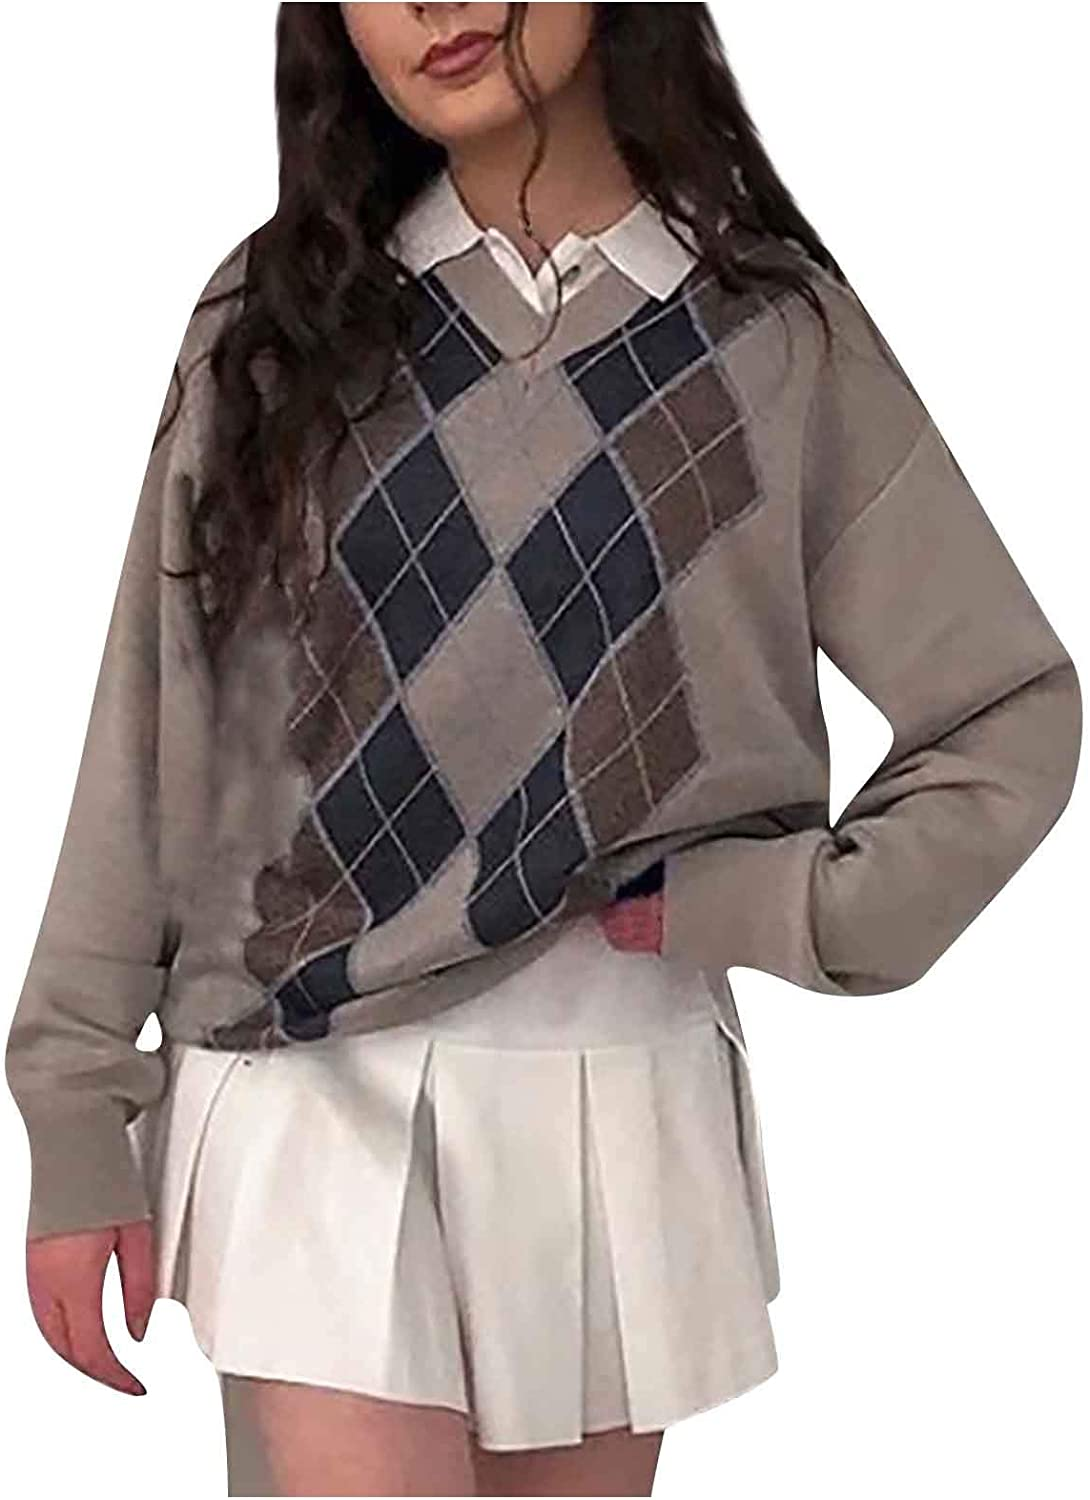 FEITONG Sweater Vest Ribbed Knitted Teens Argyle Plaid Streetwear Girls 90s Preppy Style V Neck Top Knitwear